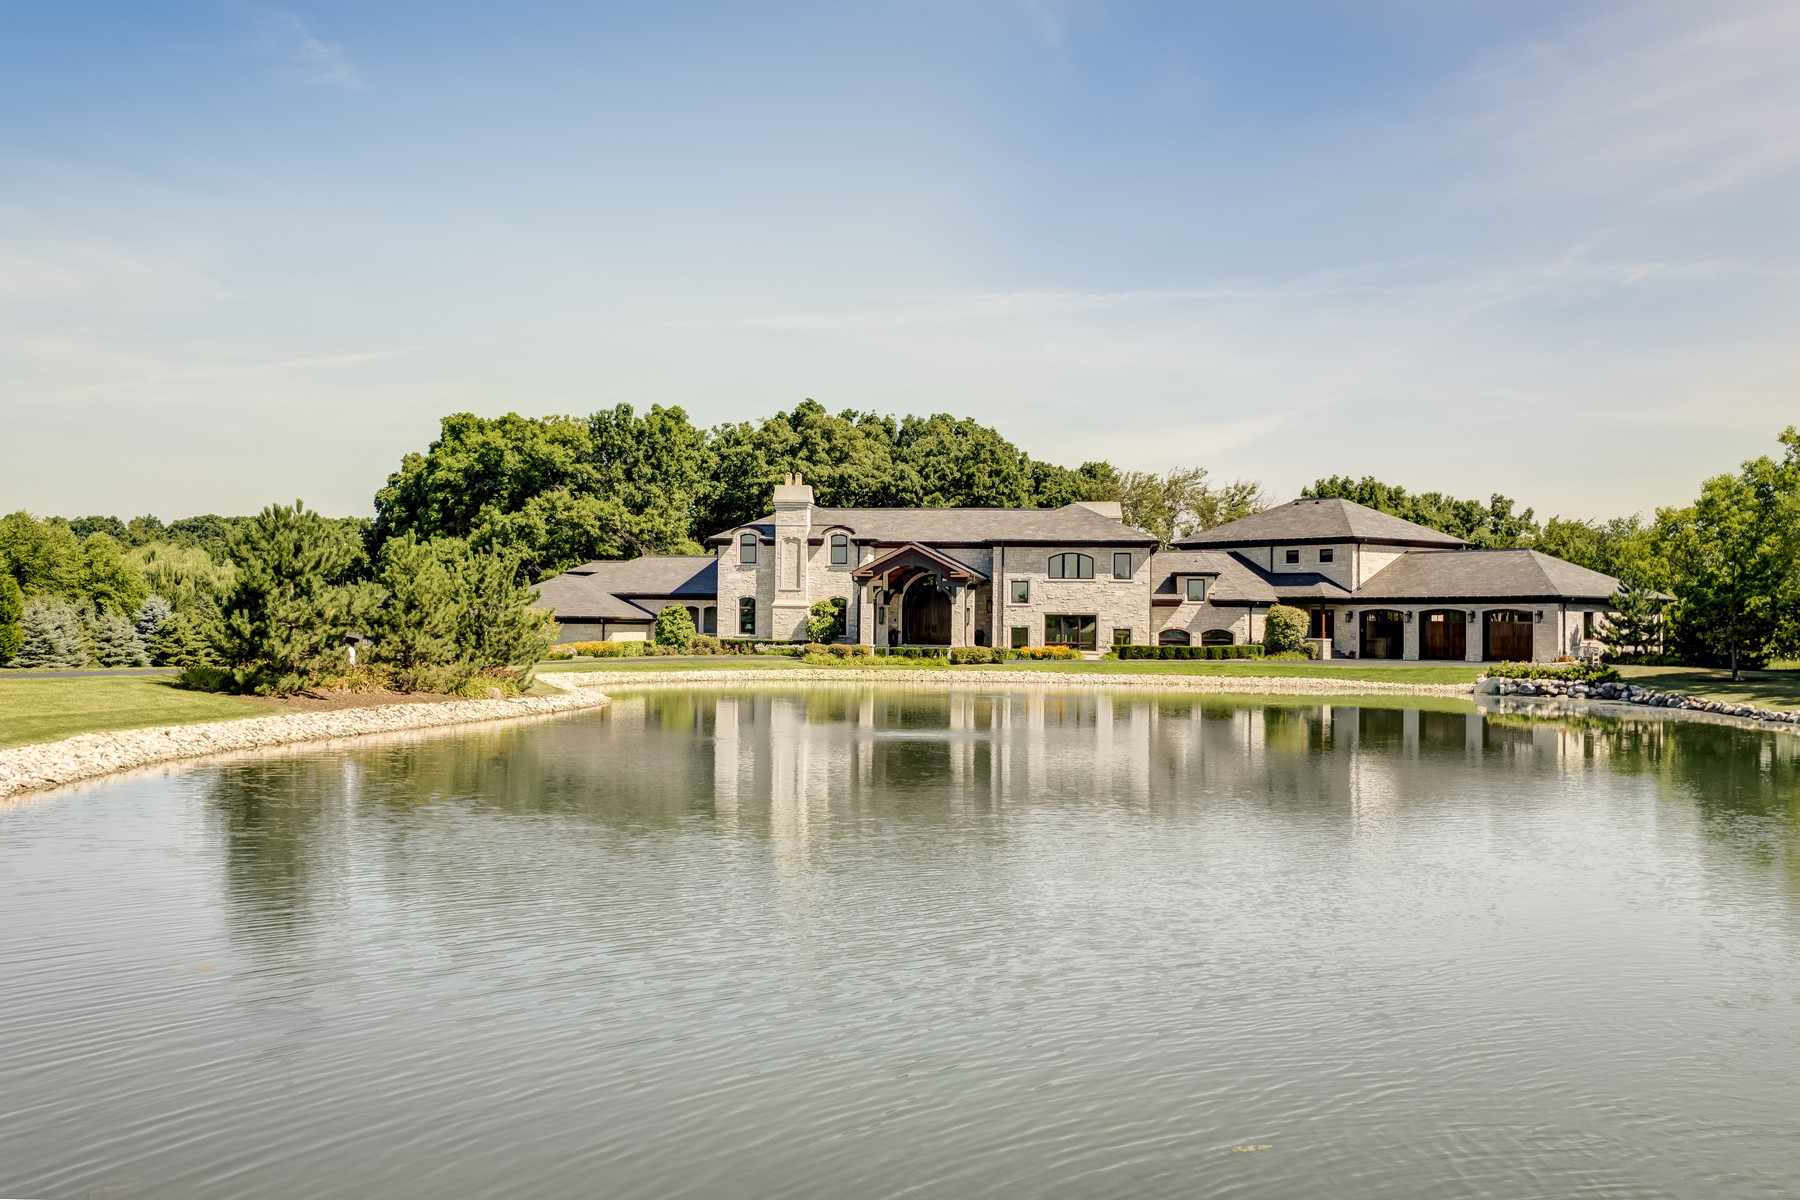 Single Family Home for Sale at Contemporary Custom Limestone Home 14848 104th Street Bristol, Wisconsin 53142 United States